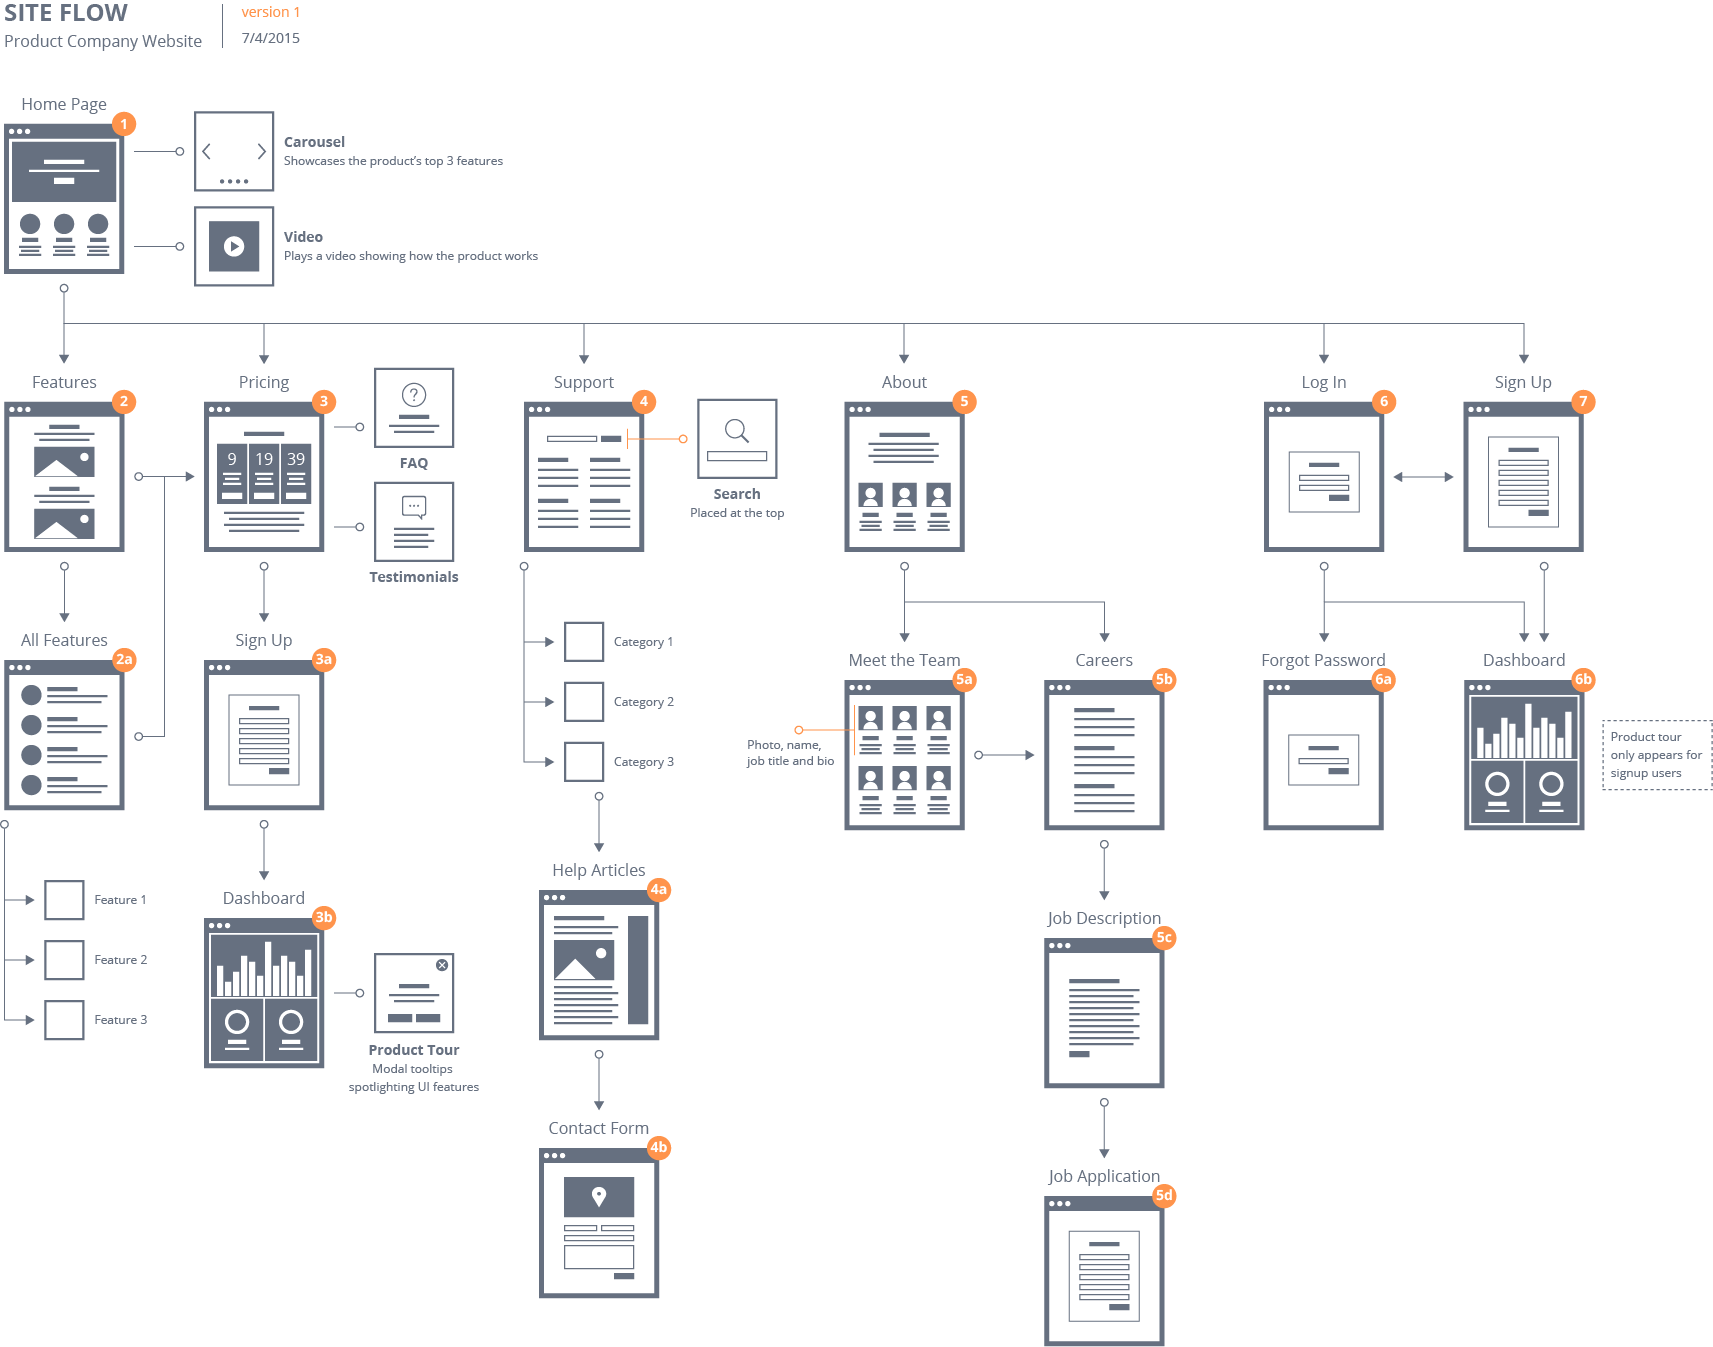 user interaction flow diagram pull switch wiring patterns make site flows with fine visual detail